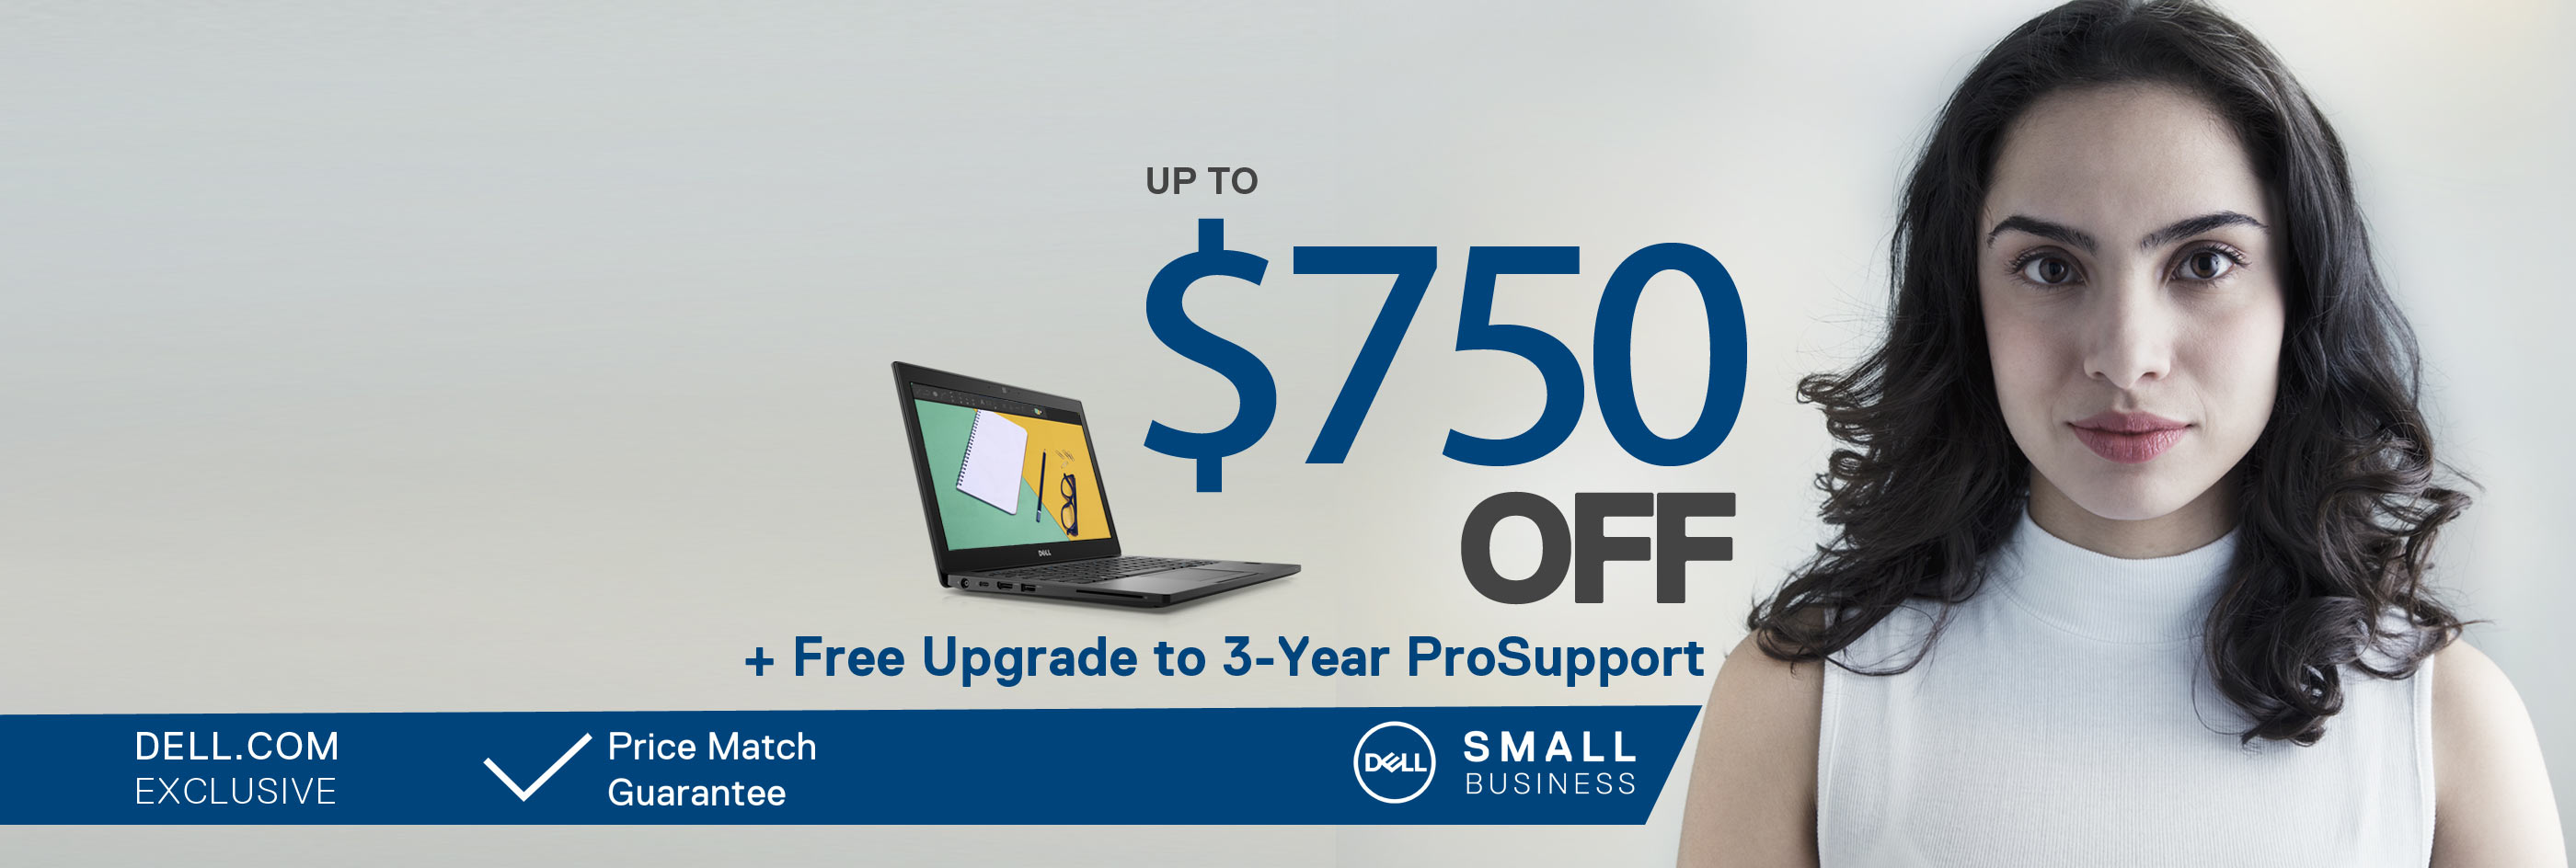 Hot Business Deals: Get up to $750 off + 3-Year ProSupport